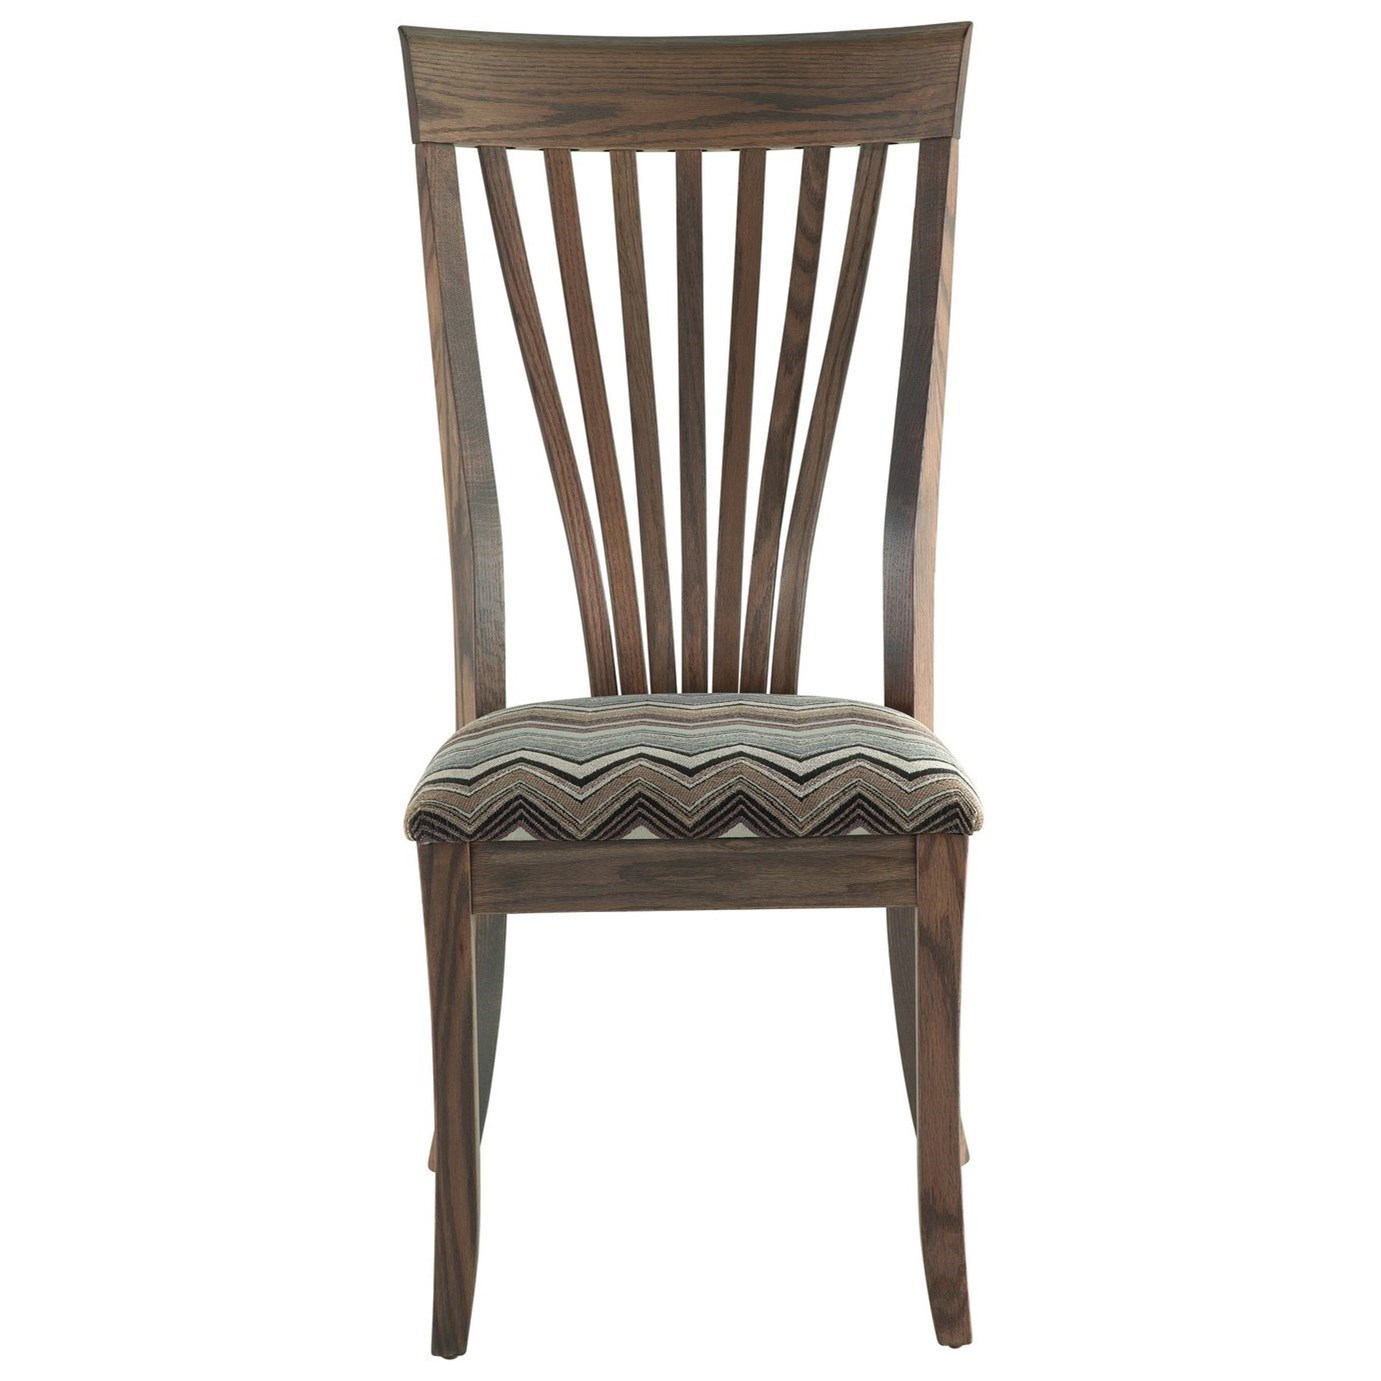 Expressions Brinkley Side Chair by Palettes by Winesburg at Dinette Depot